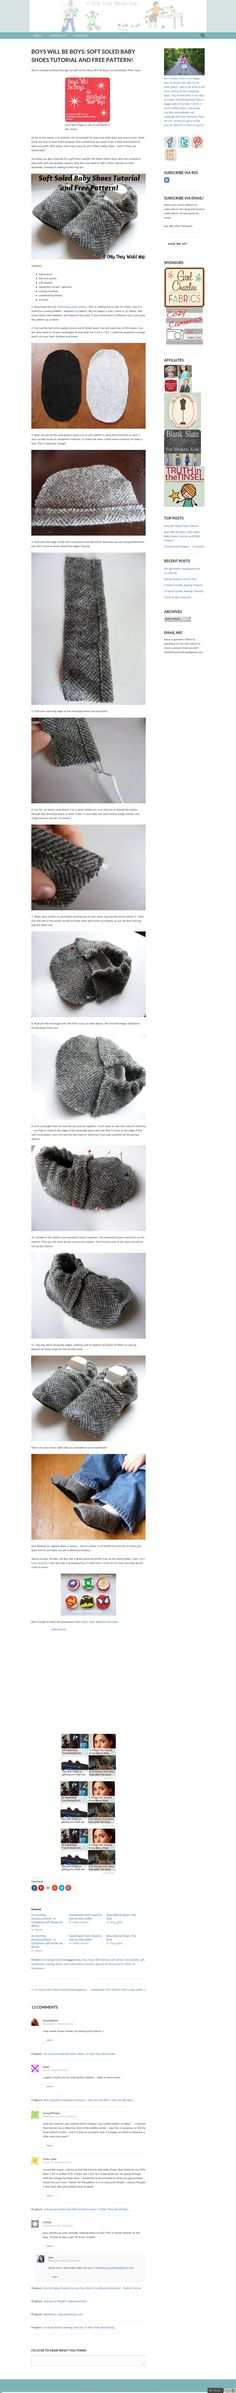 Website'http%3A%2F%2Fifonlytheywouldnap.net%2F2012%2F12%2F06%2Fboys-will-be-boys-soft-soled-baby-shoes-tutorial-and-free-pattern%2F' snapped on Page2images!